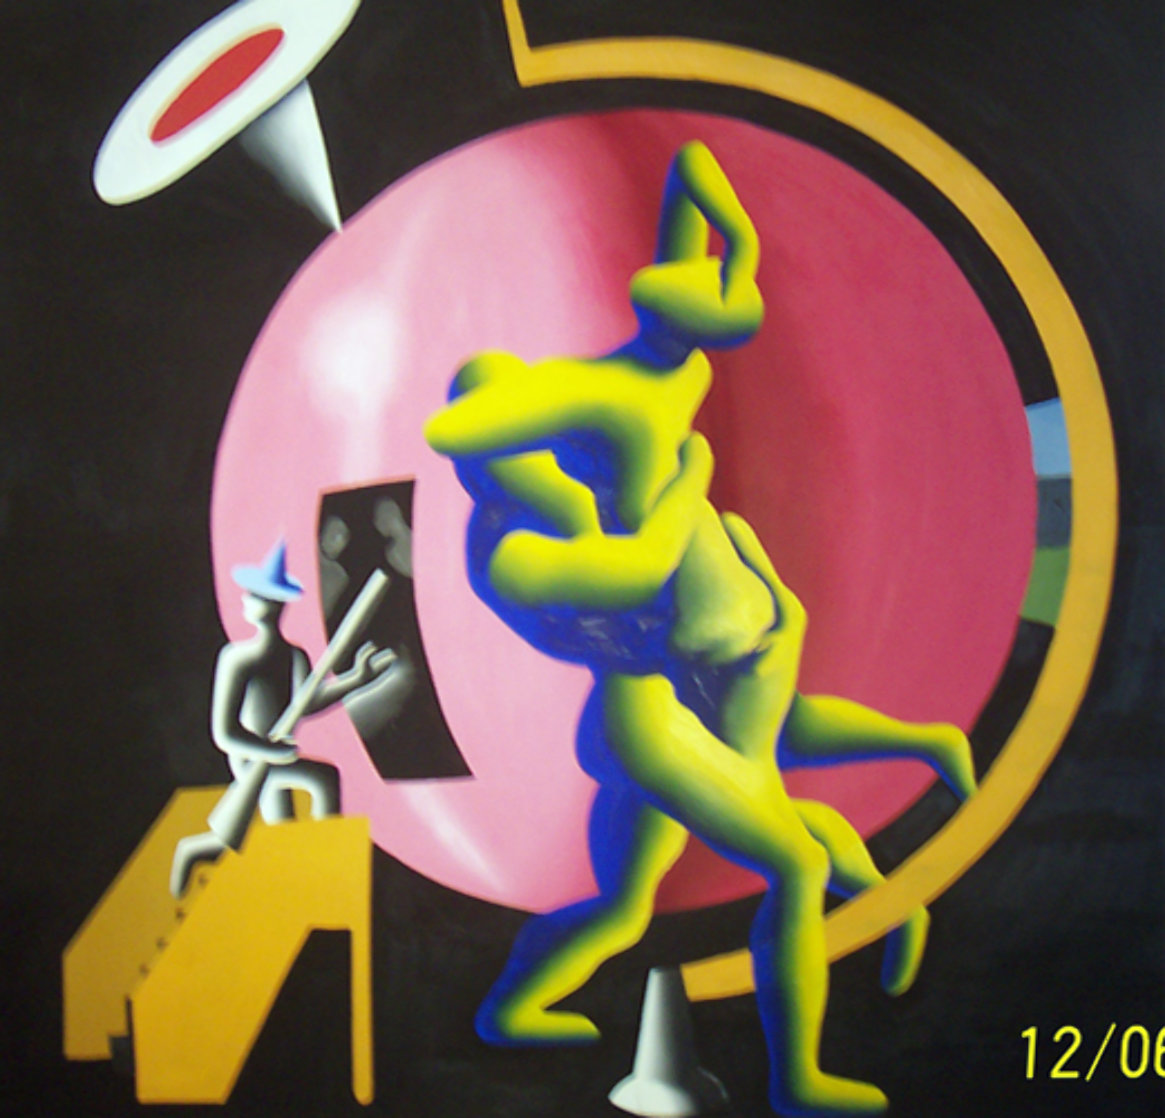 All The Worlds as Hostage 1986 84x84 Super Super Huge Original Painting by Mark Kostabi